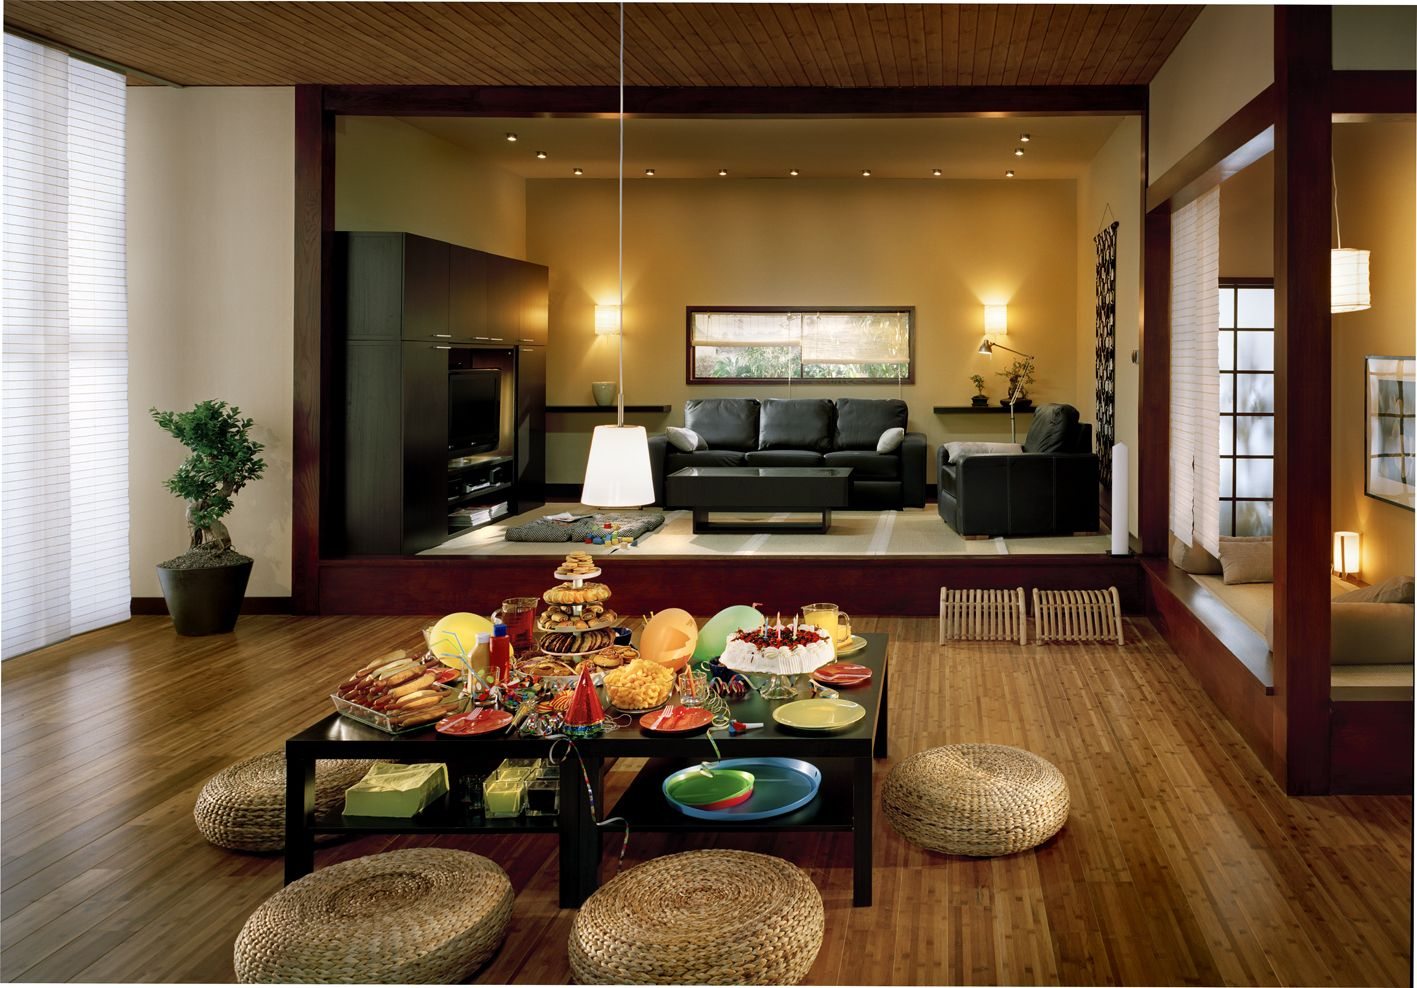 Overwhelming Open Plan Modern Japanese House Interior Decorating .